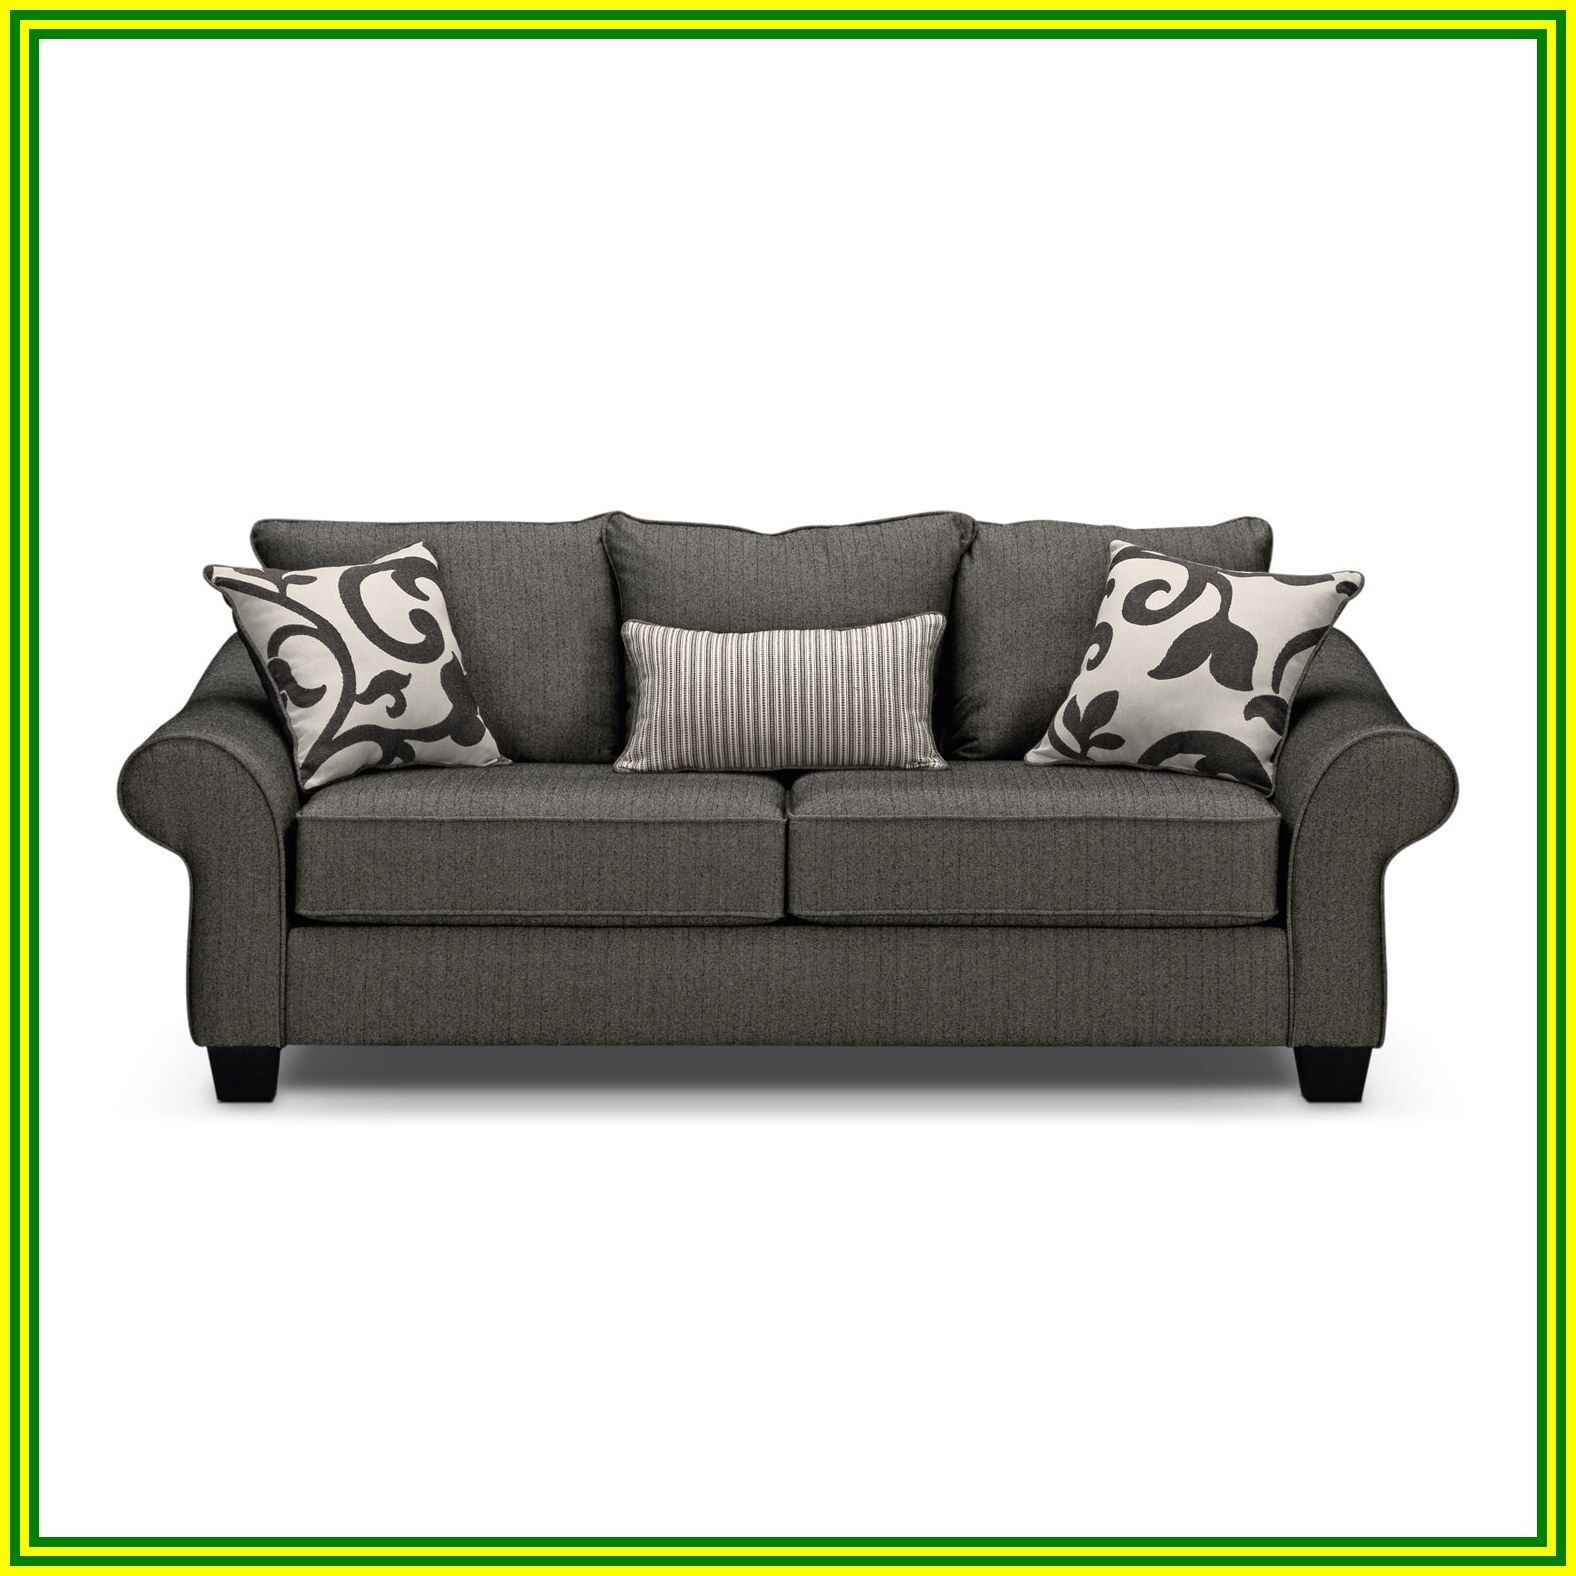 58 reference of gray black sofa in 2020 Grey furniture